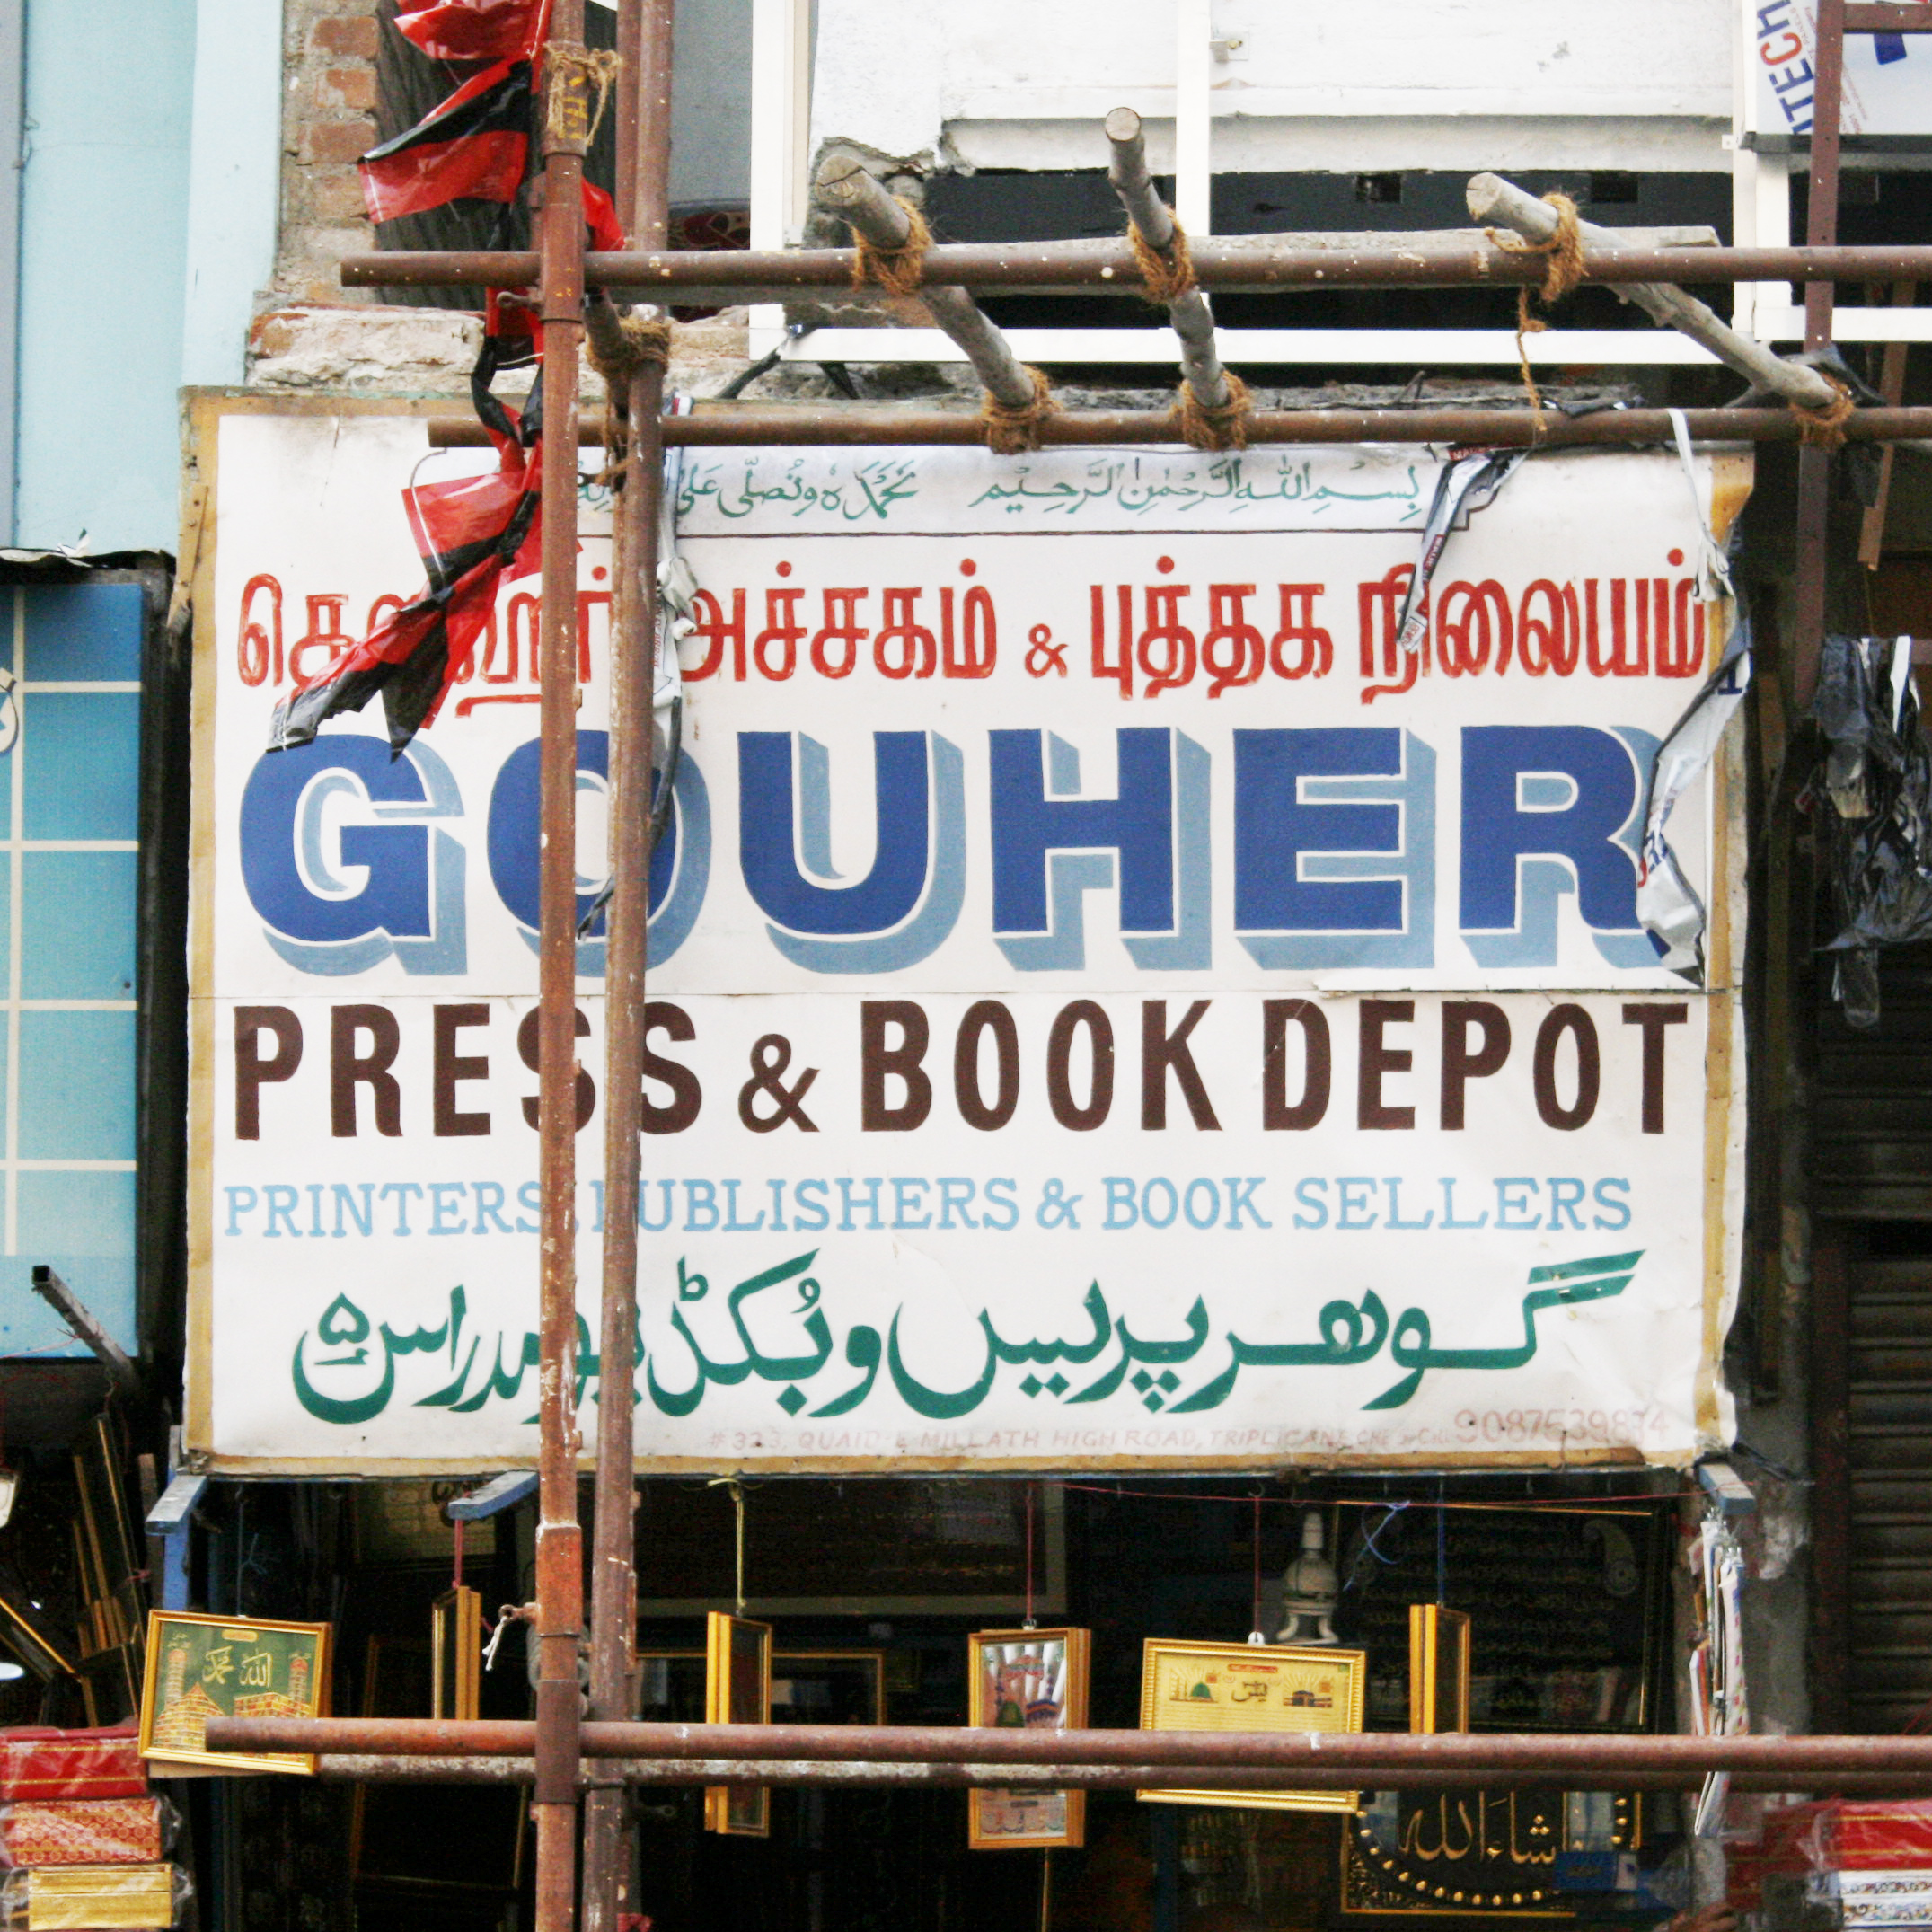 Gouher Press & Book Depot